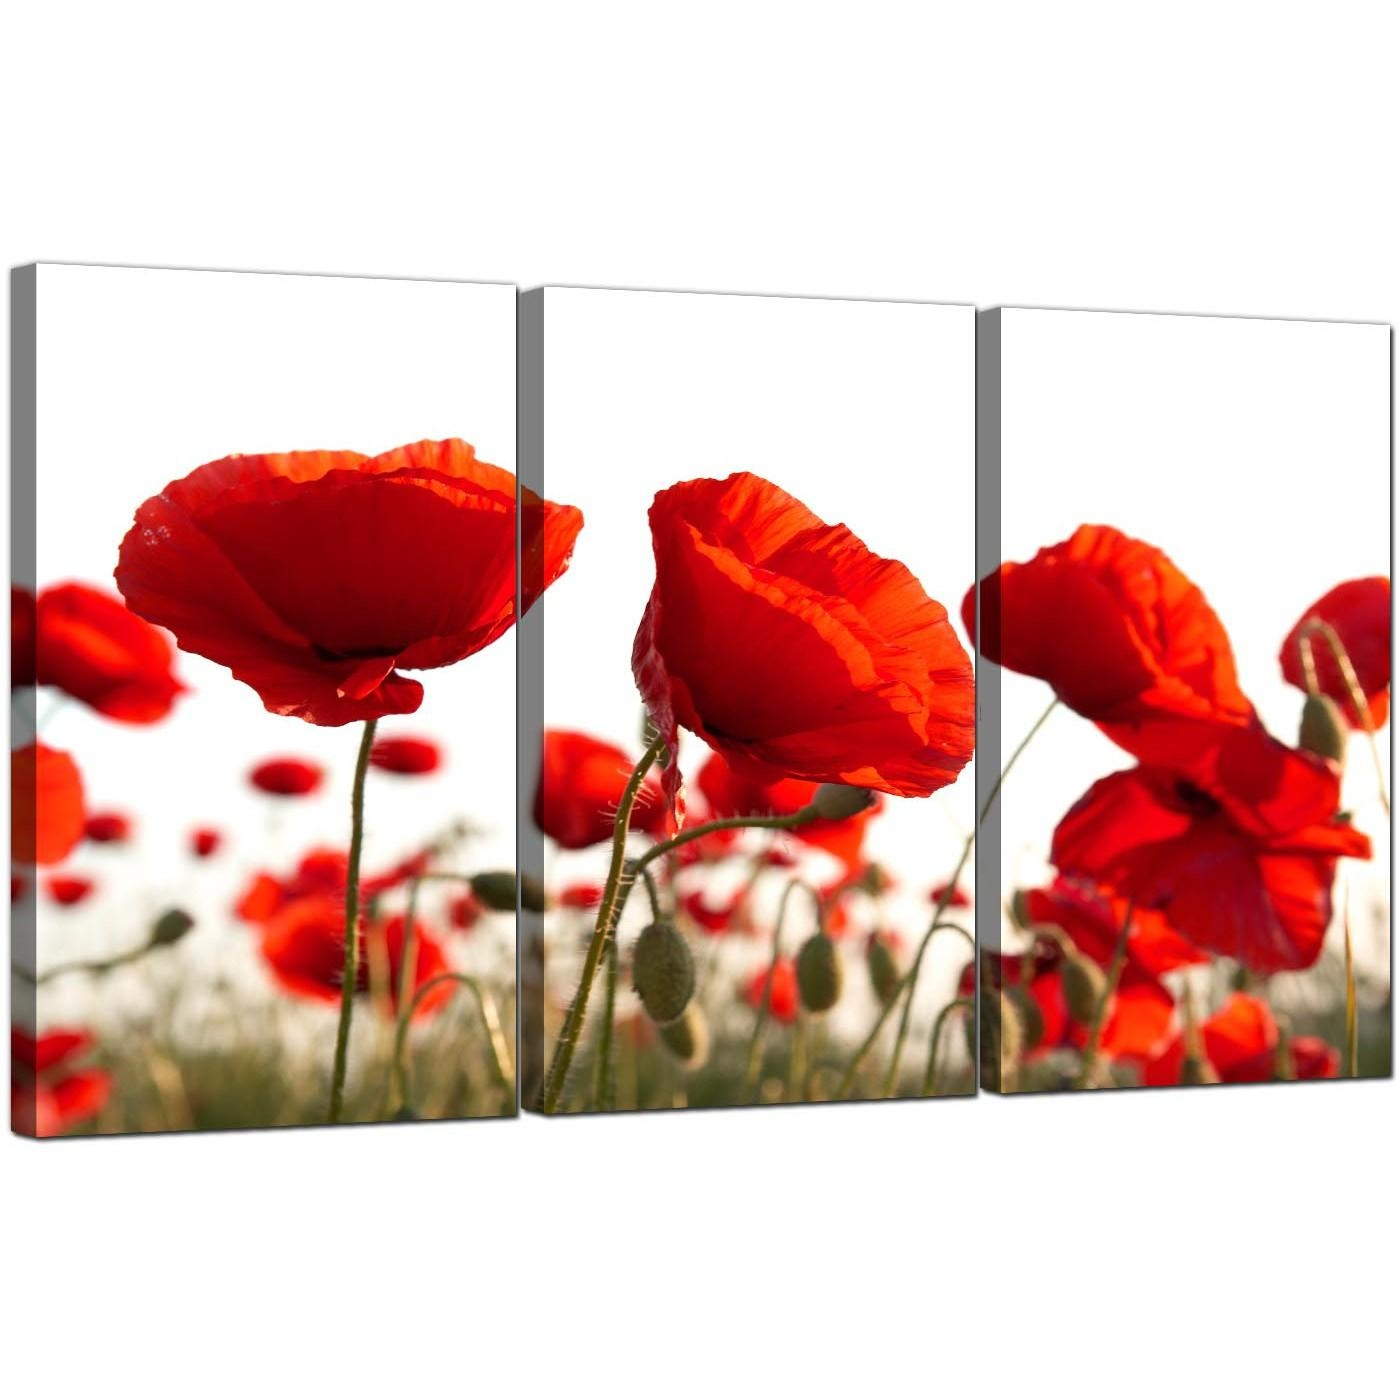 Poppies Wall Art Easy Metal Wall Art For Outdoor Wall Art – Home Pertaining To Metal Poppy Wall Art (View 5 of 20)